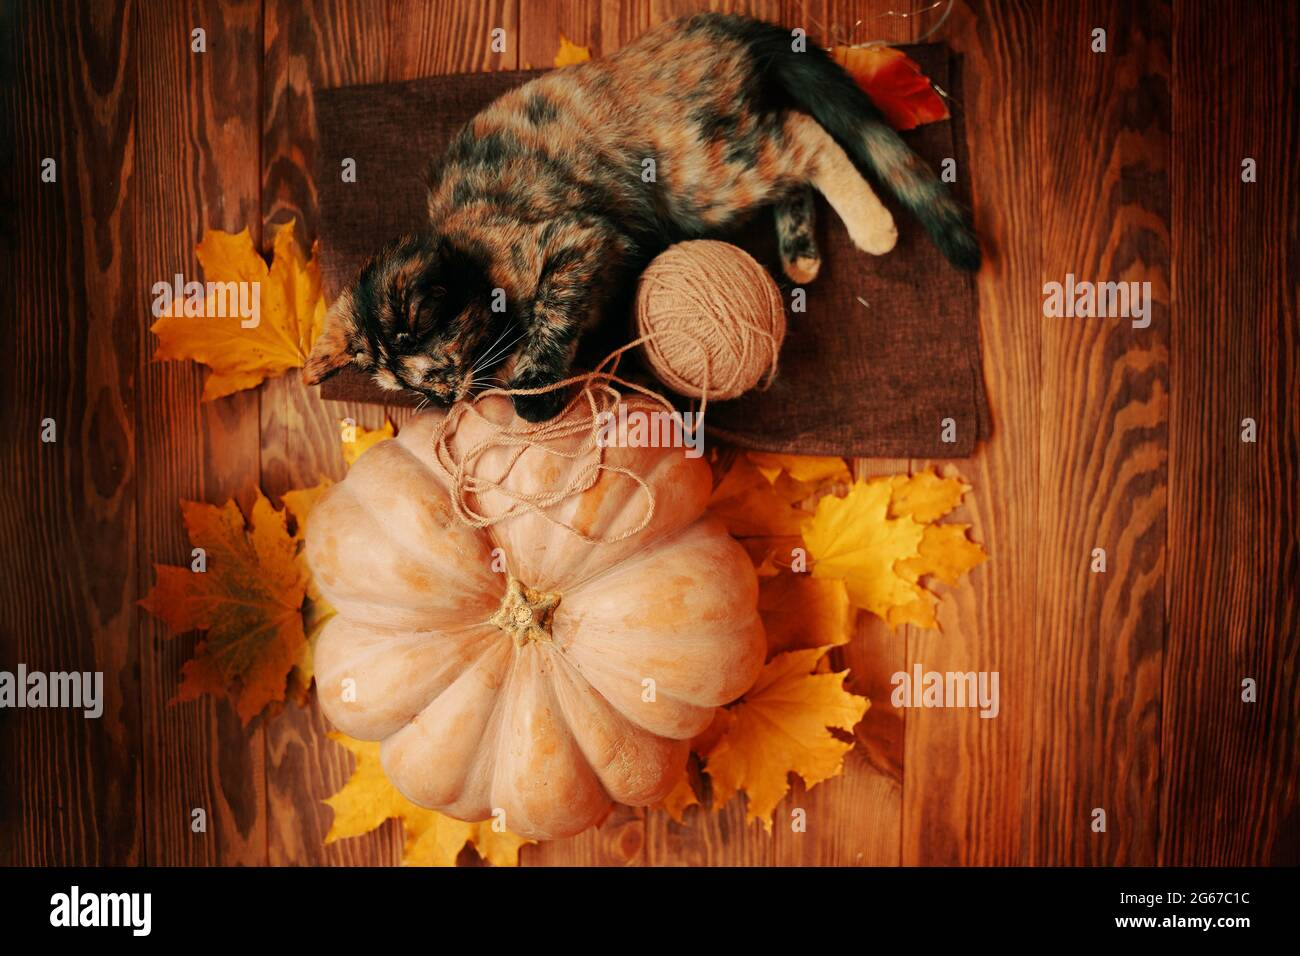 Little kitten is playing with a ball of yarn on a brown rug. Large ripe pumpkin, cute cat and yellow autumn leaves on a wooden background. Stock Photo